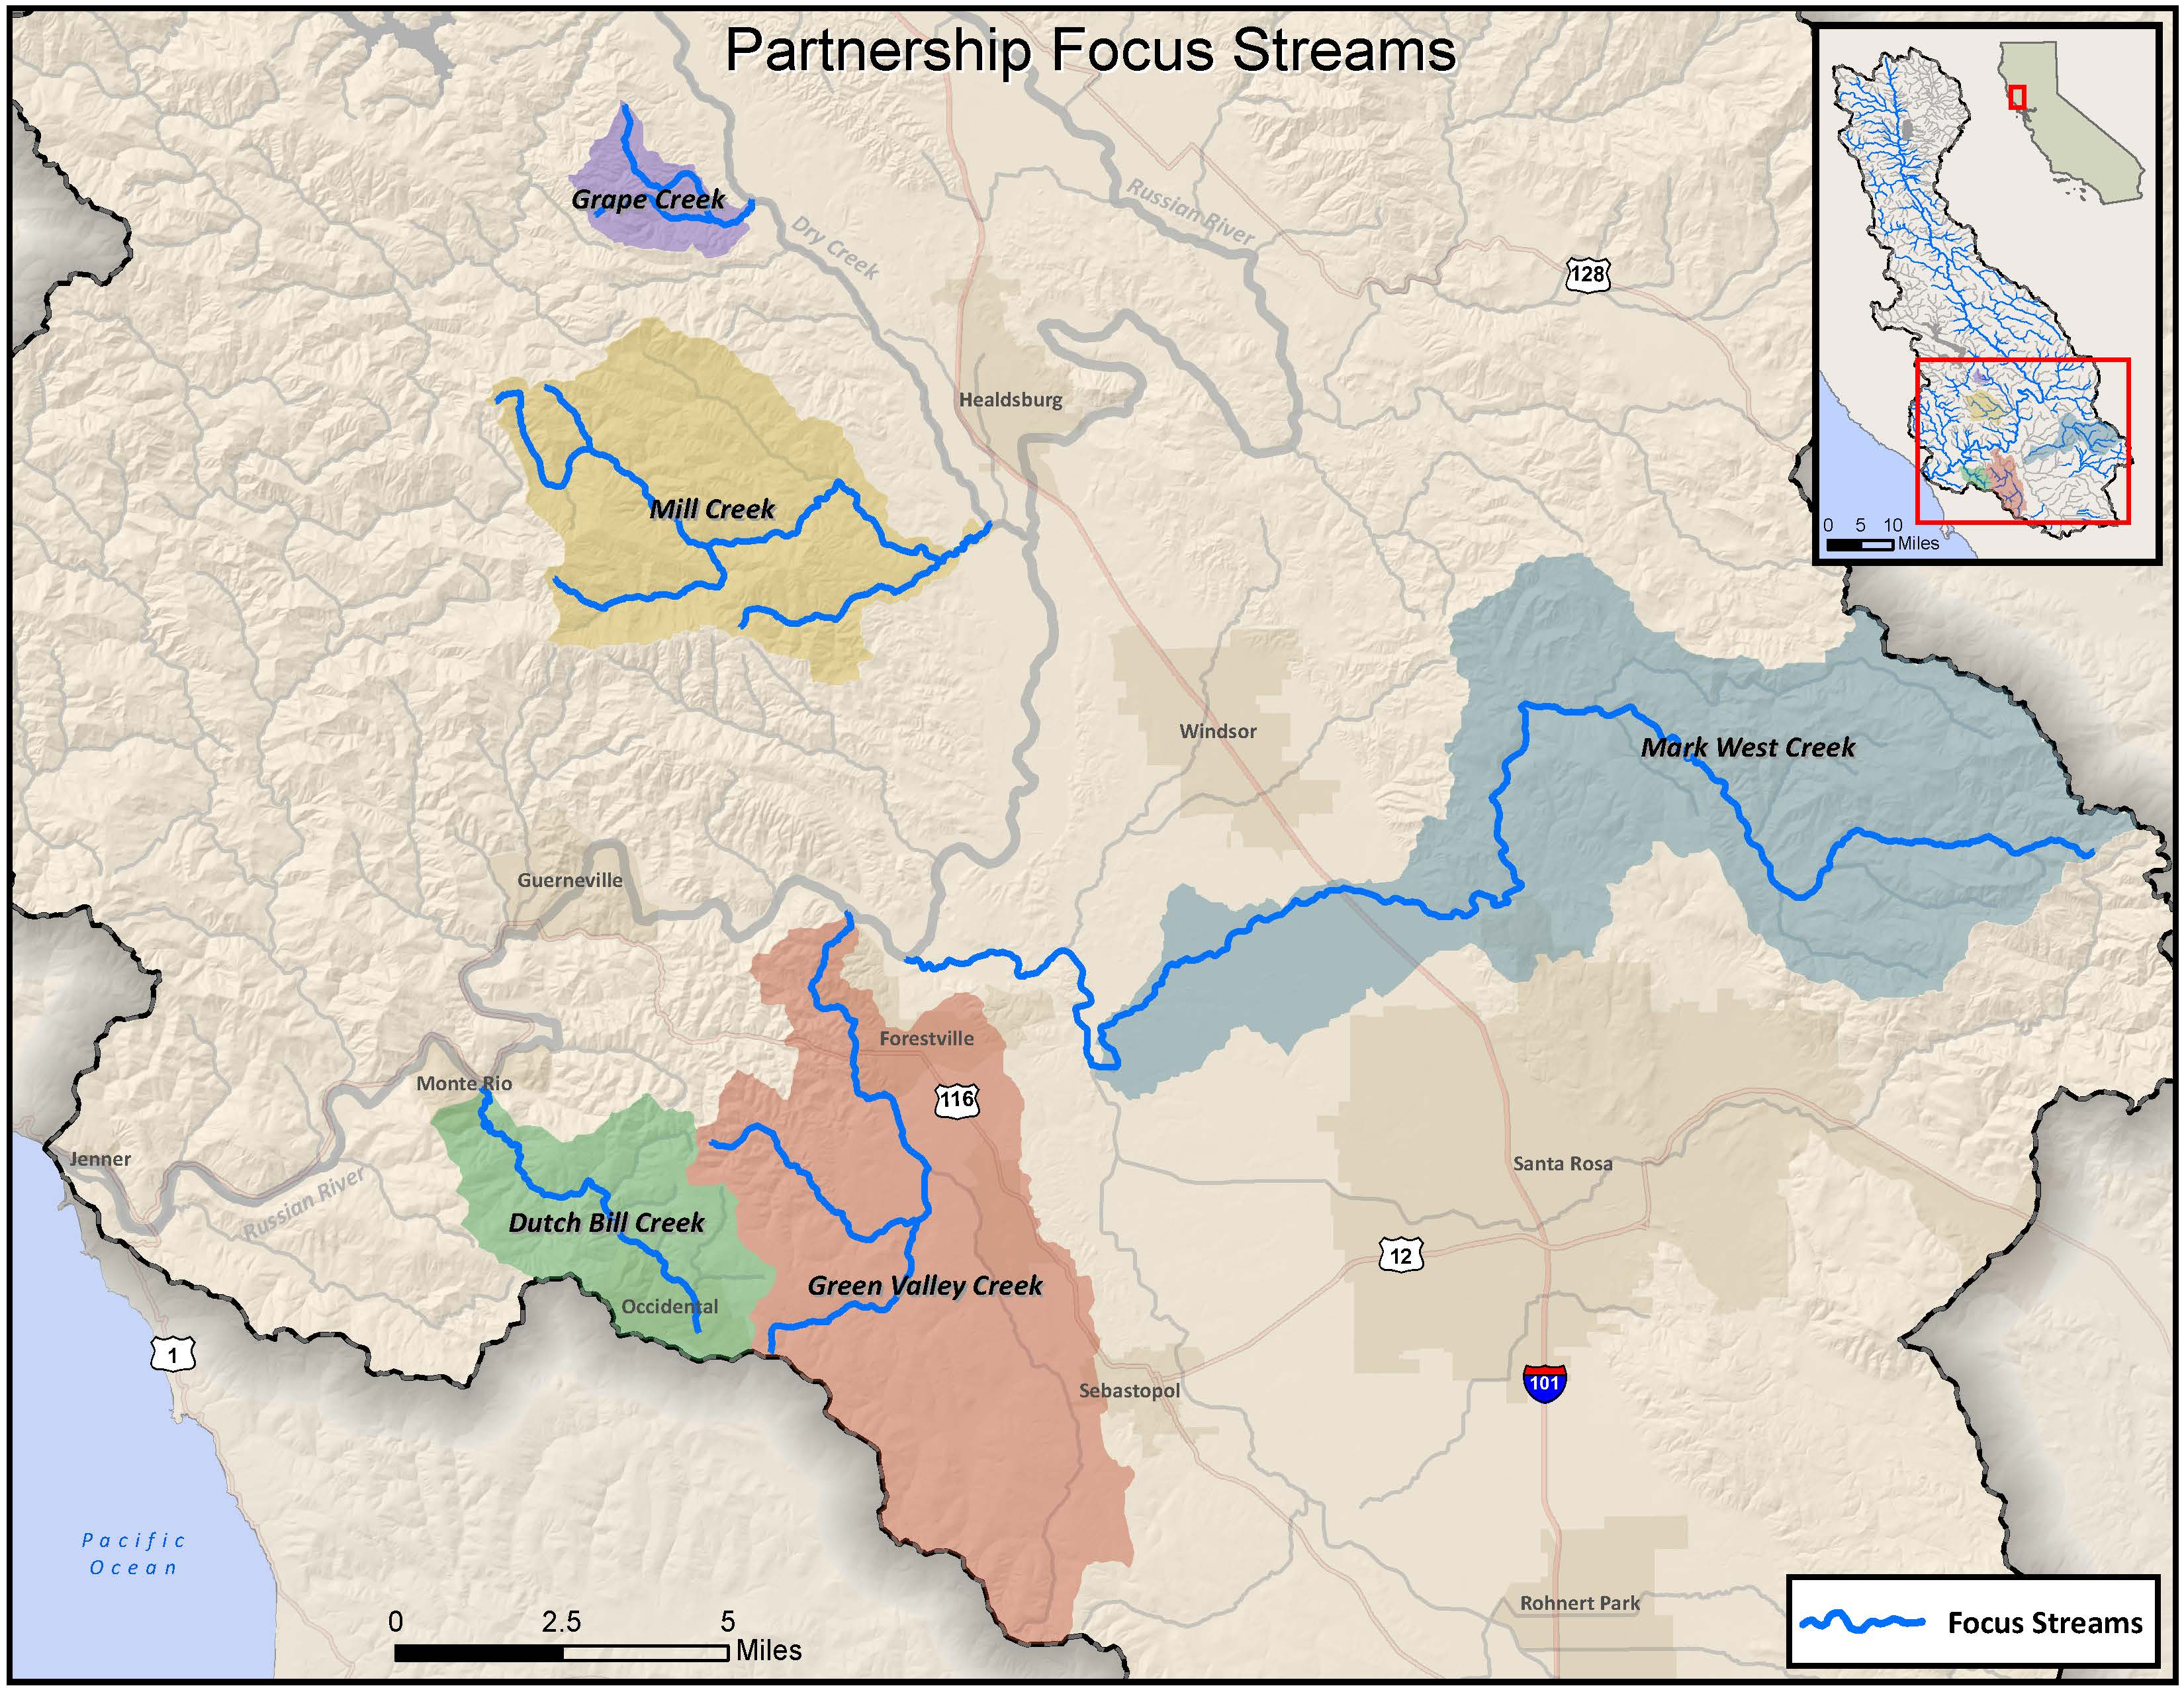 Coho Partnership focus streams in the lower Russian River Watershed.